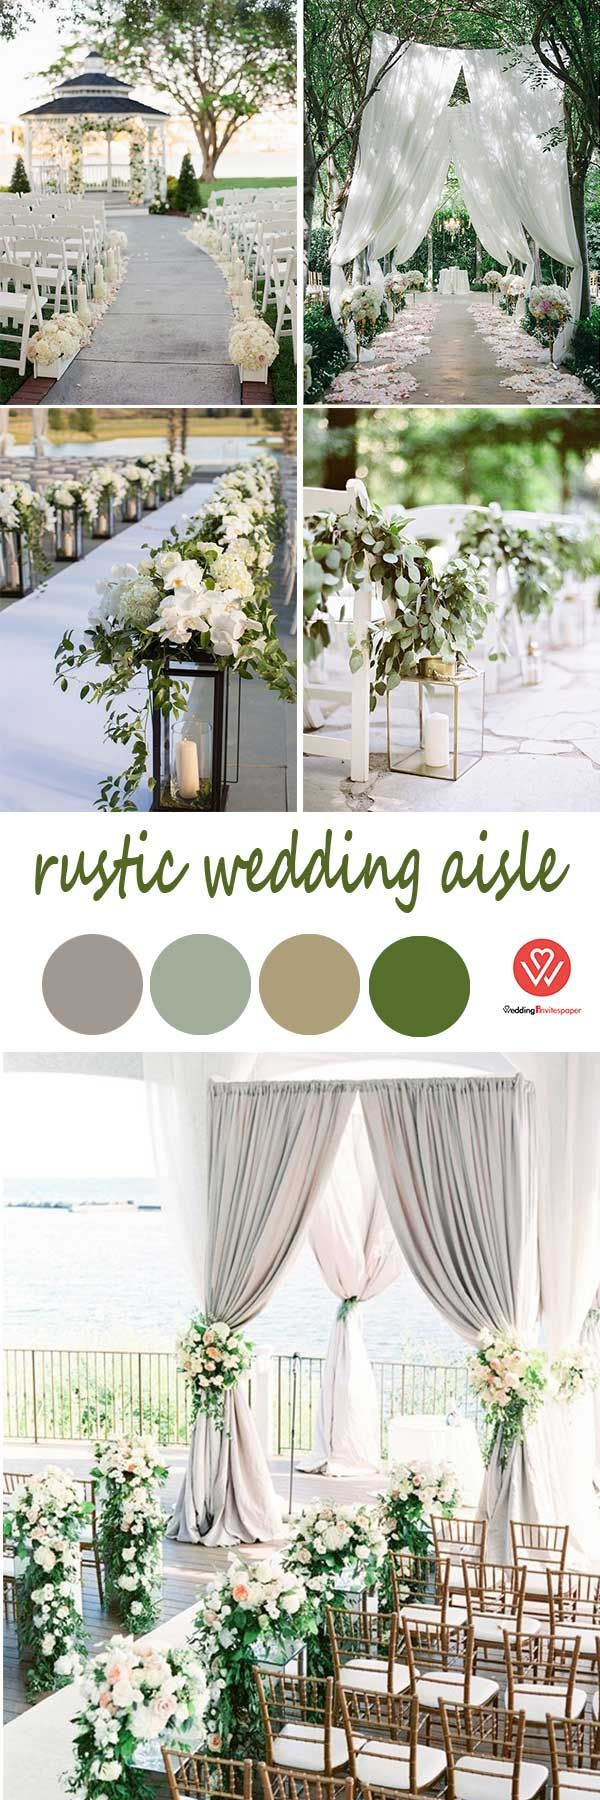 Top 10 Rustic Ideas From 1950s To Rock Your Wedding shade of grey ...